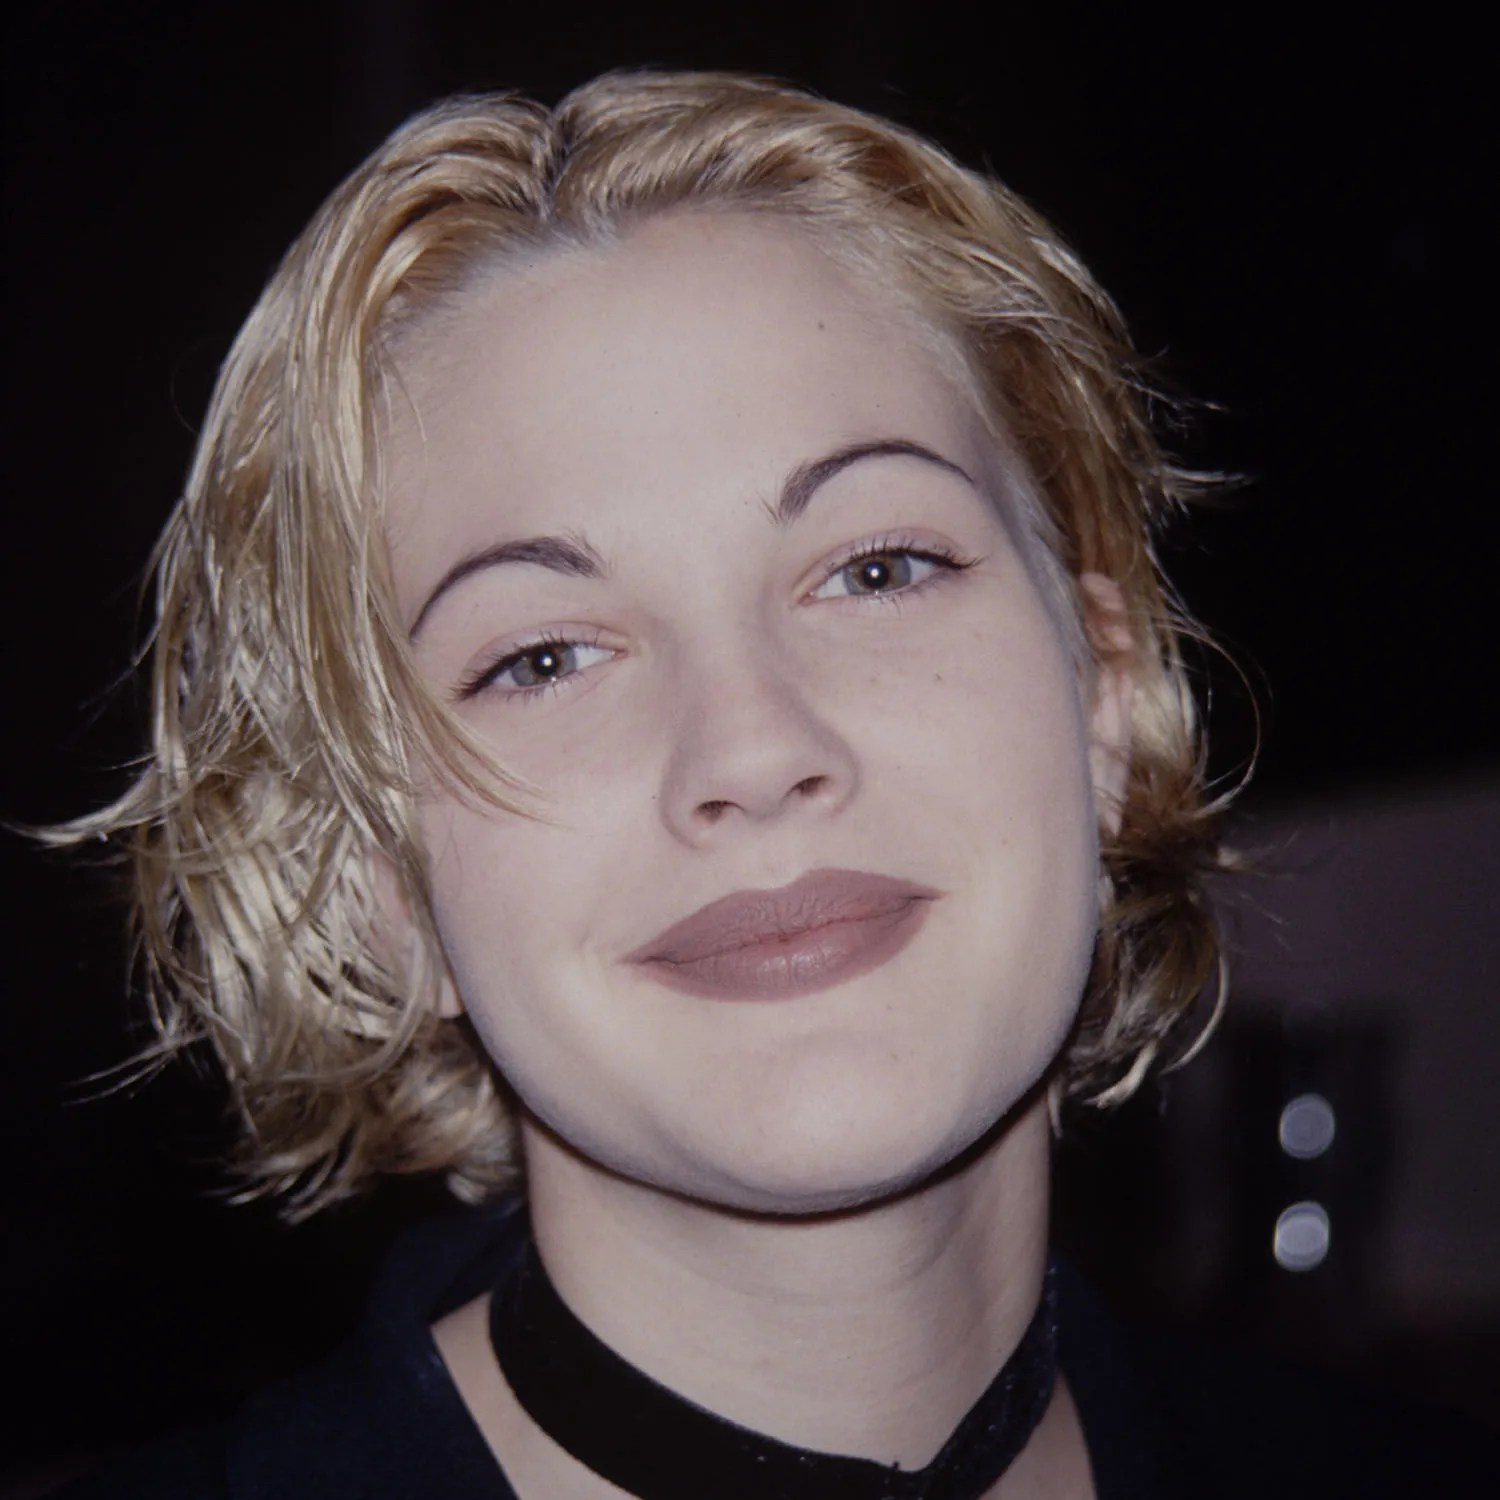 Drew Barrymores Thin Eyebrows Were So Hot In The 90s